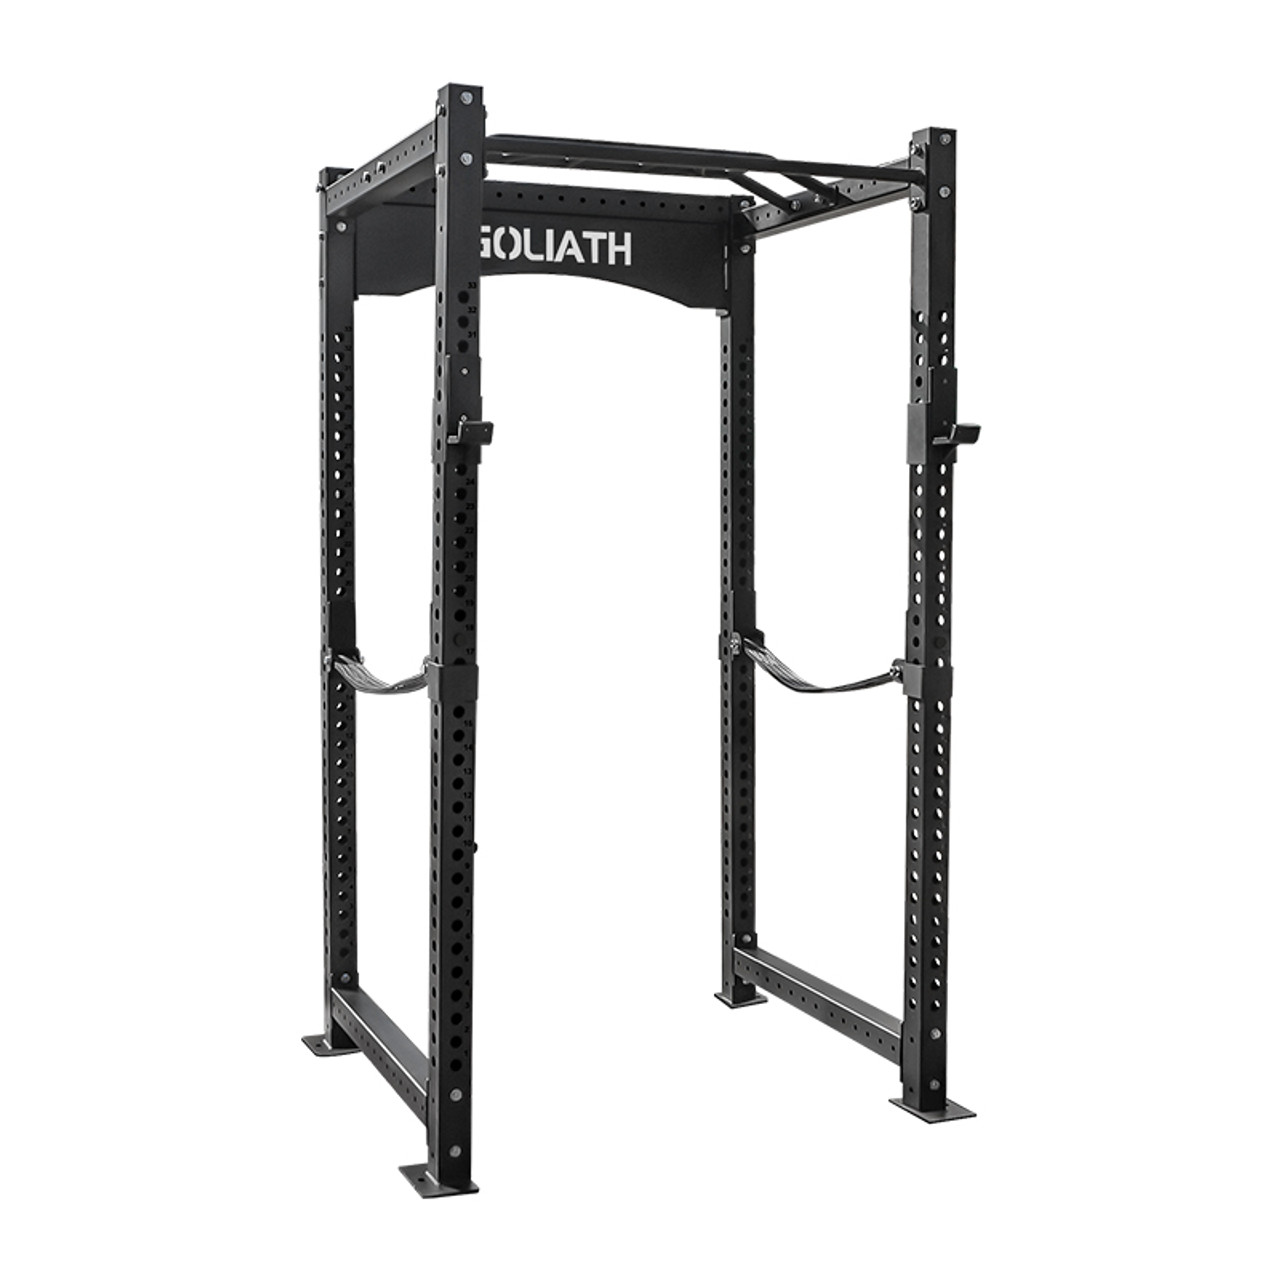 Economy Power Rack UPGRADE Package - upgraded hooks and spotting straps